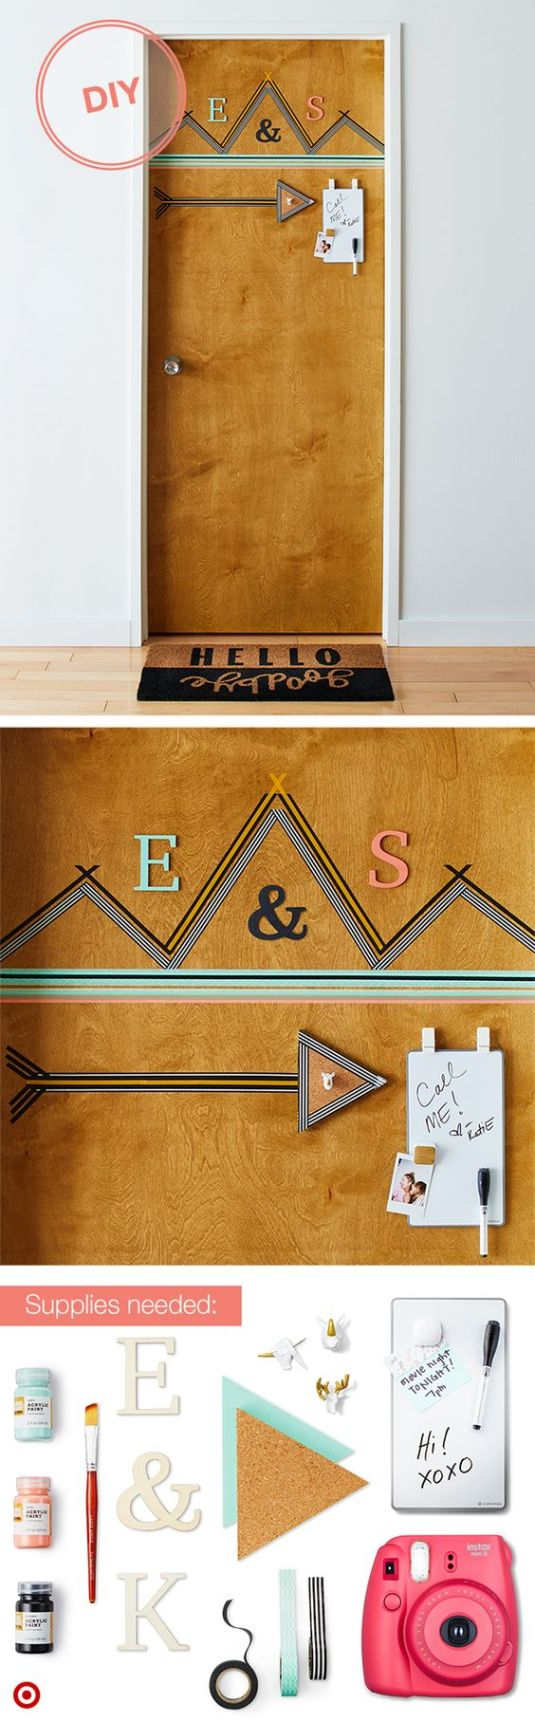 Door decor is an amazing Uni room decoration idea!